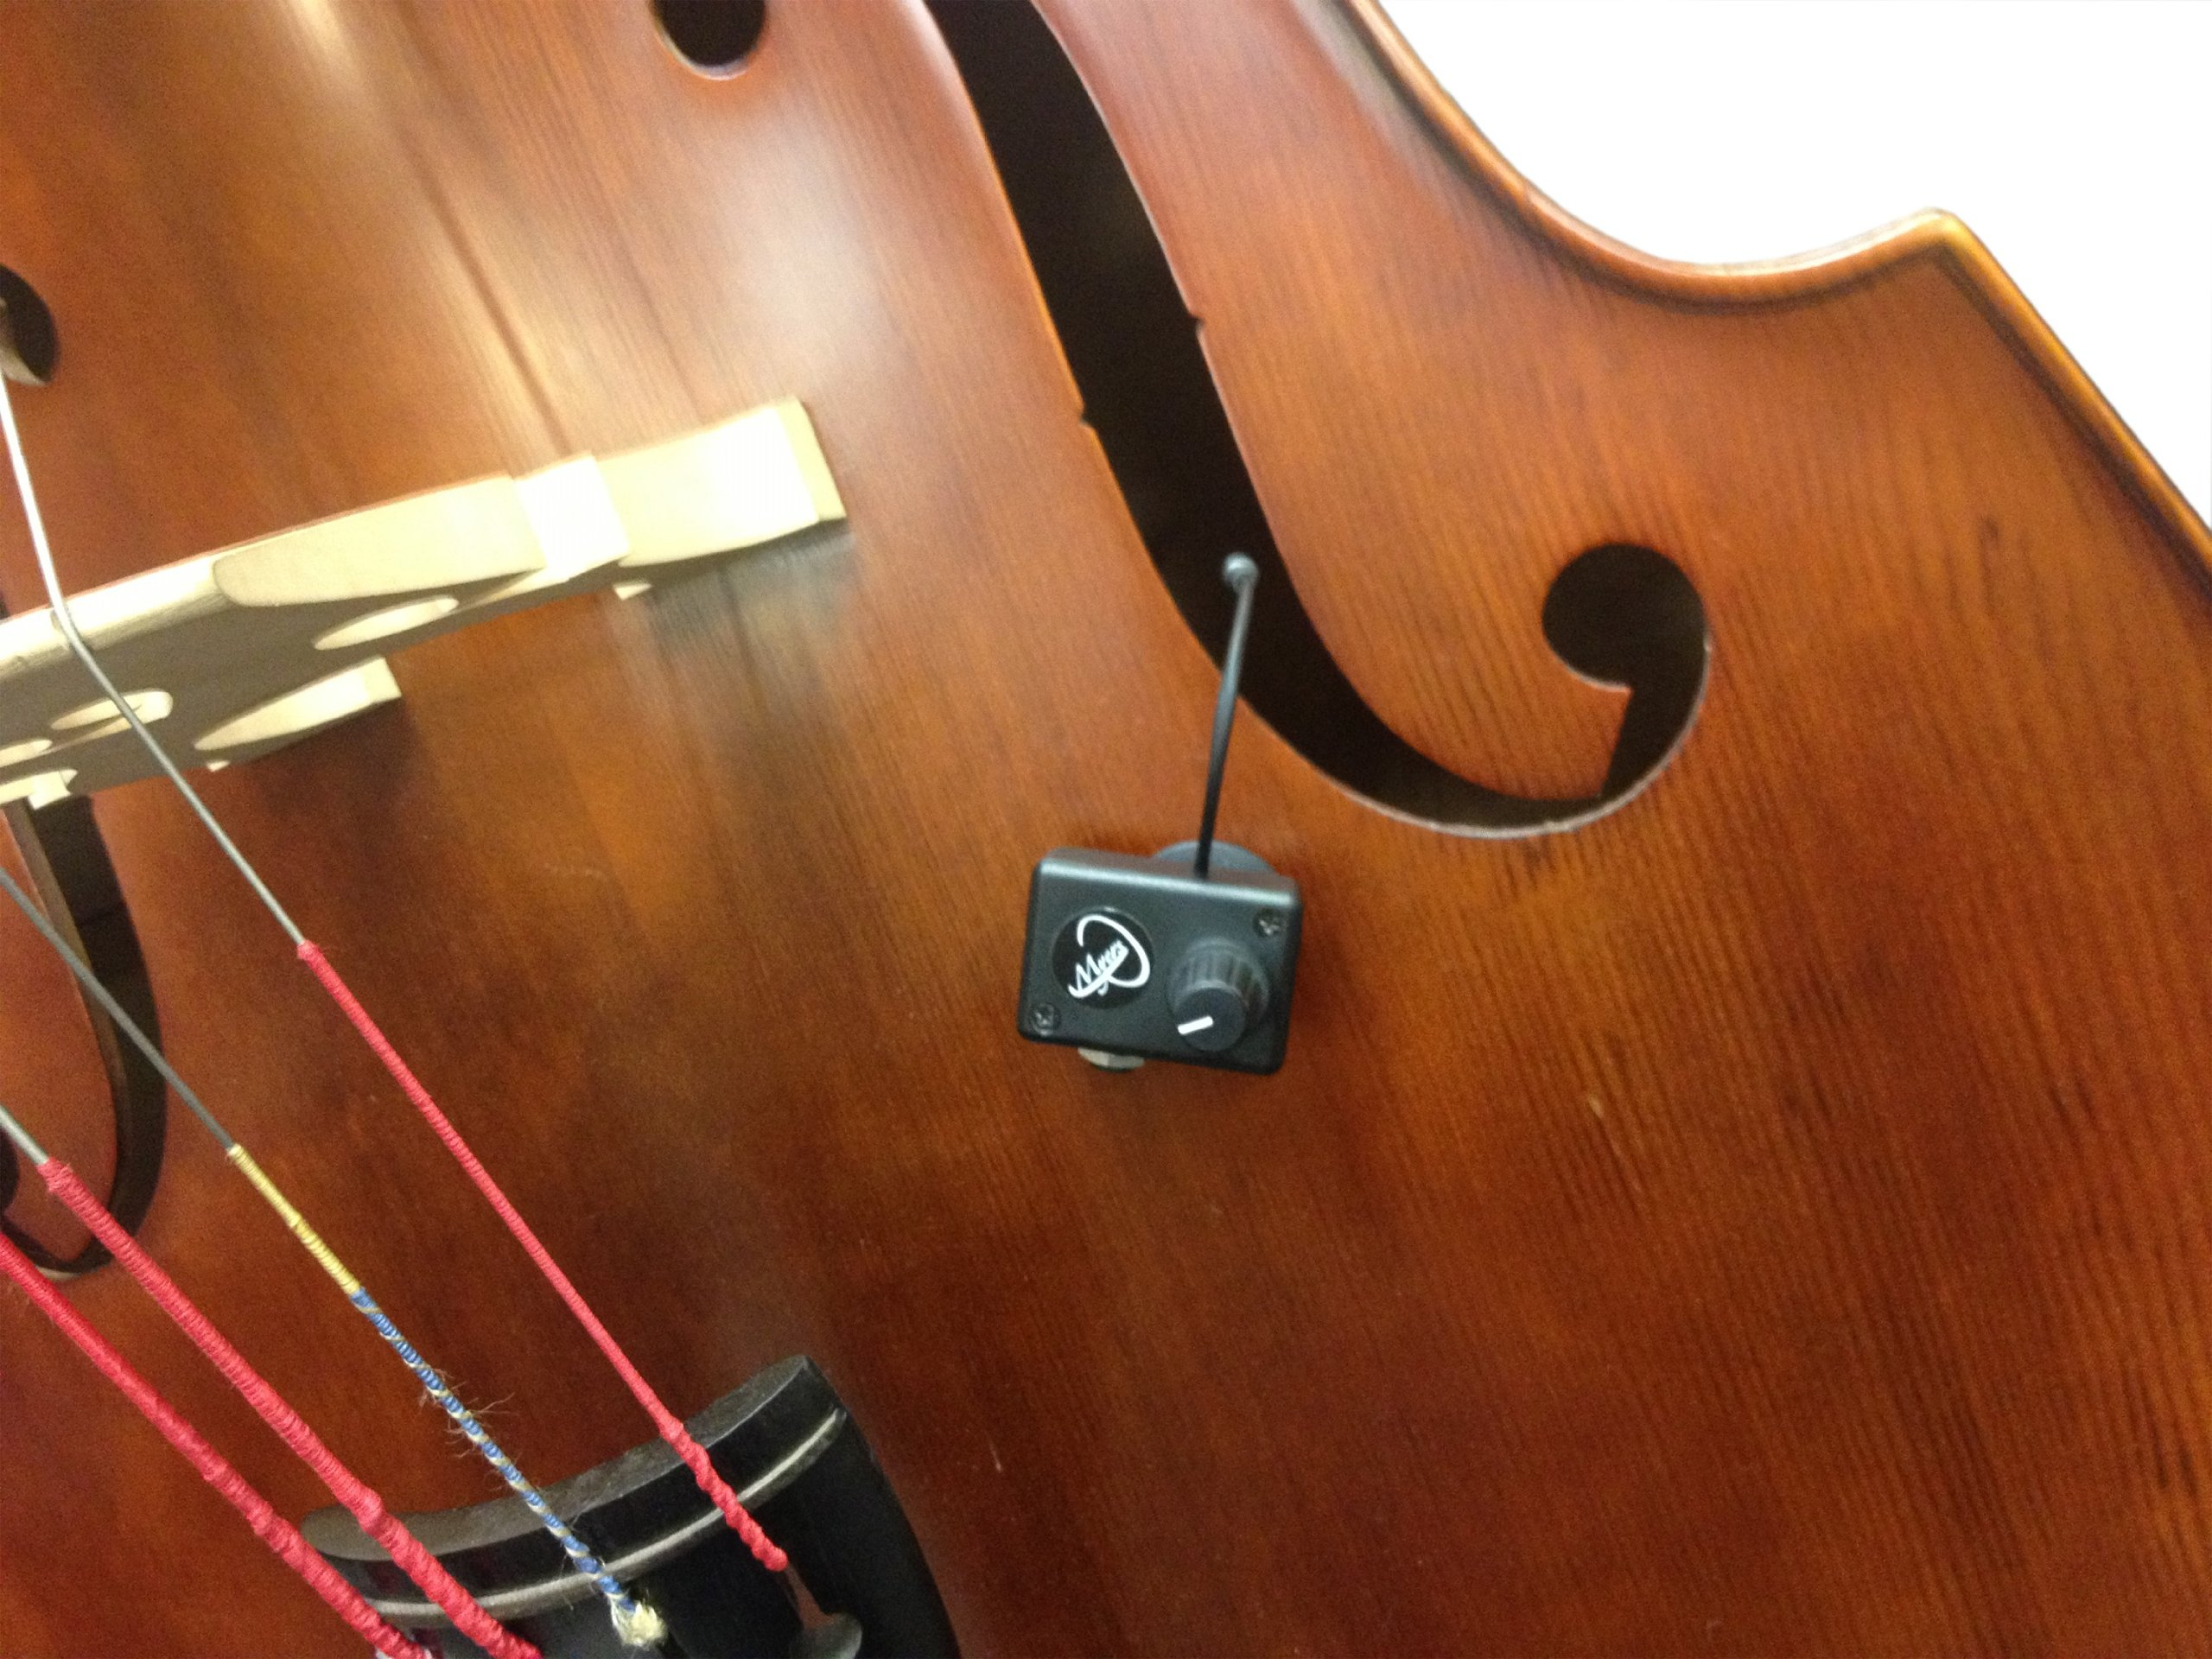 UPRIGHT BASS PICKUP, with FLEXIBLE MICRO-GOOSE NECK by Myers Pickups ~ See it in ACTION! Copy and paste: myerspickups.com